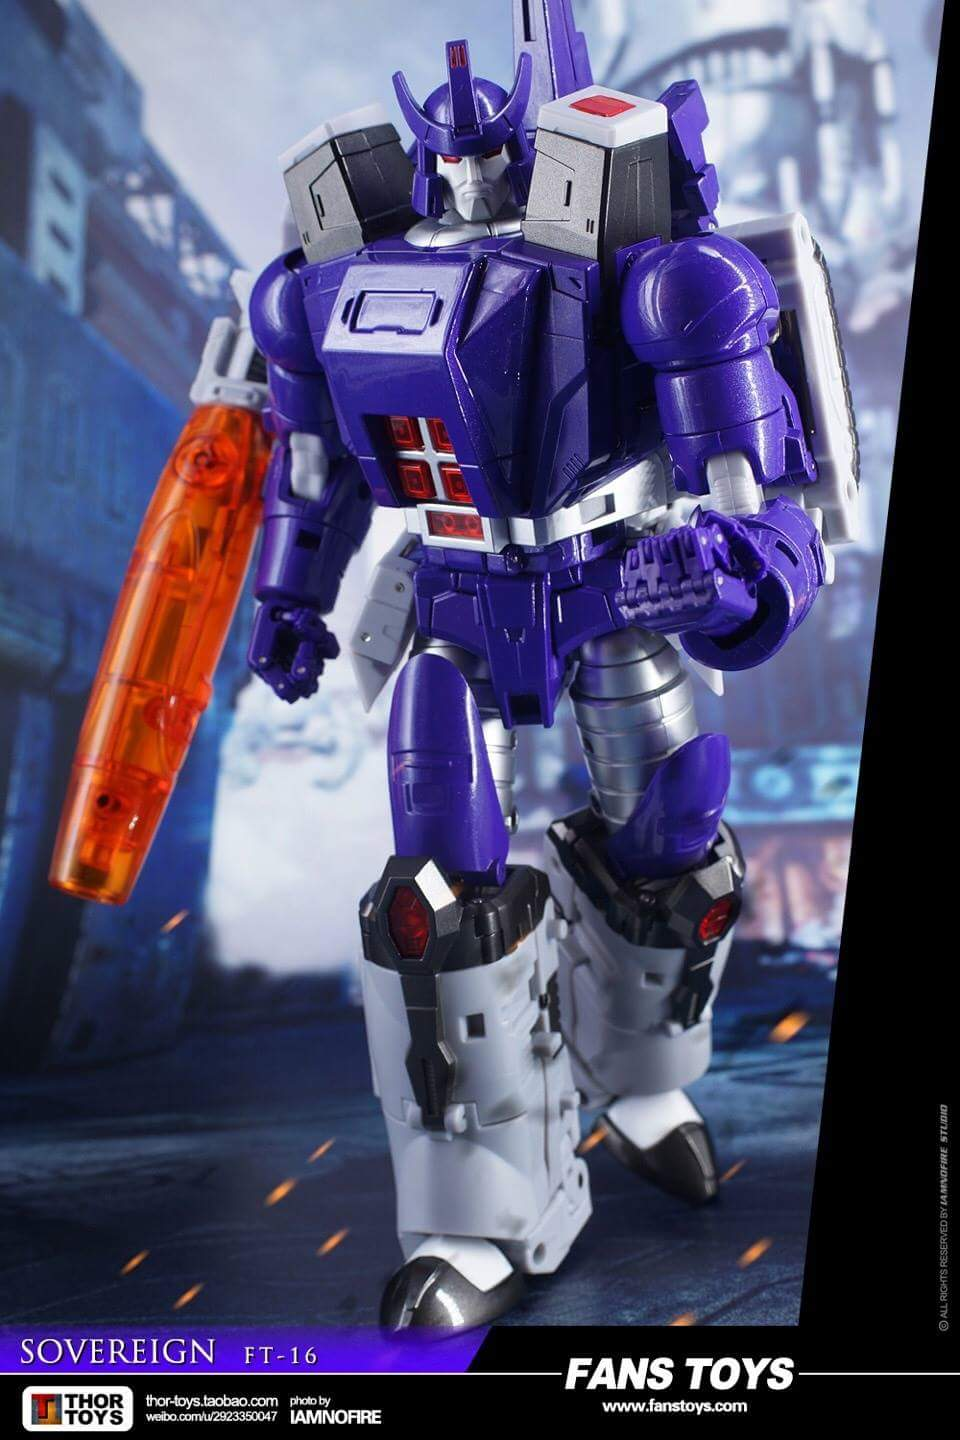 [Fanstoys] Produit Tiers - Jouet FT-16 Sovereign - aka Galvatron - Page 3 KQiS3O8S